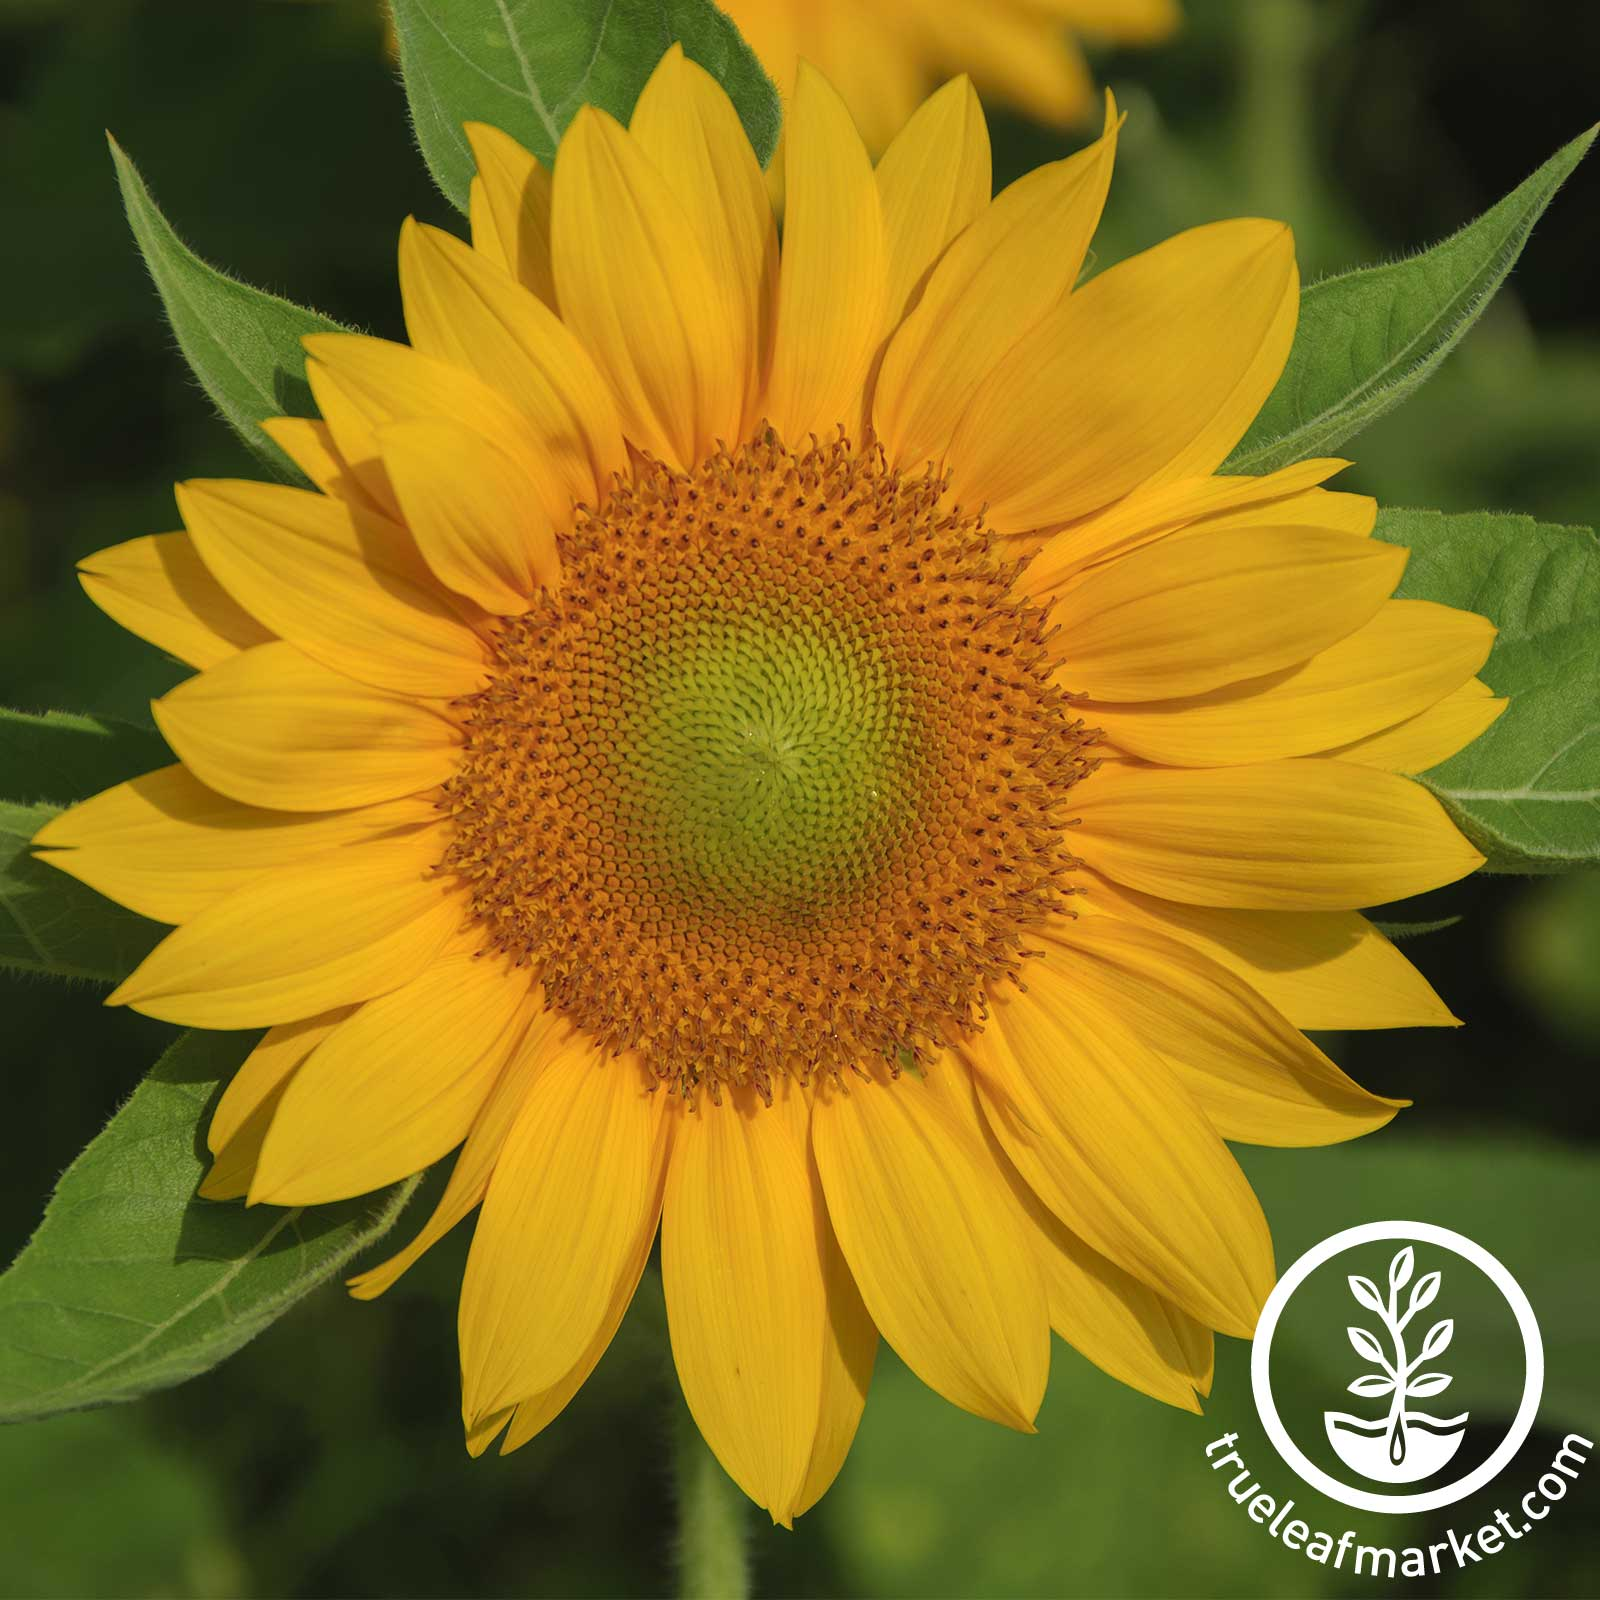 Gold Pro Cut Sunflower